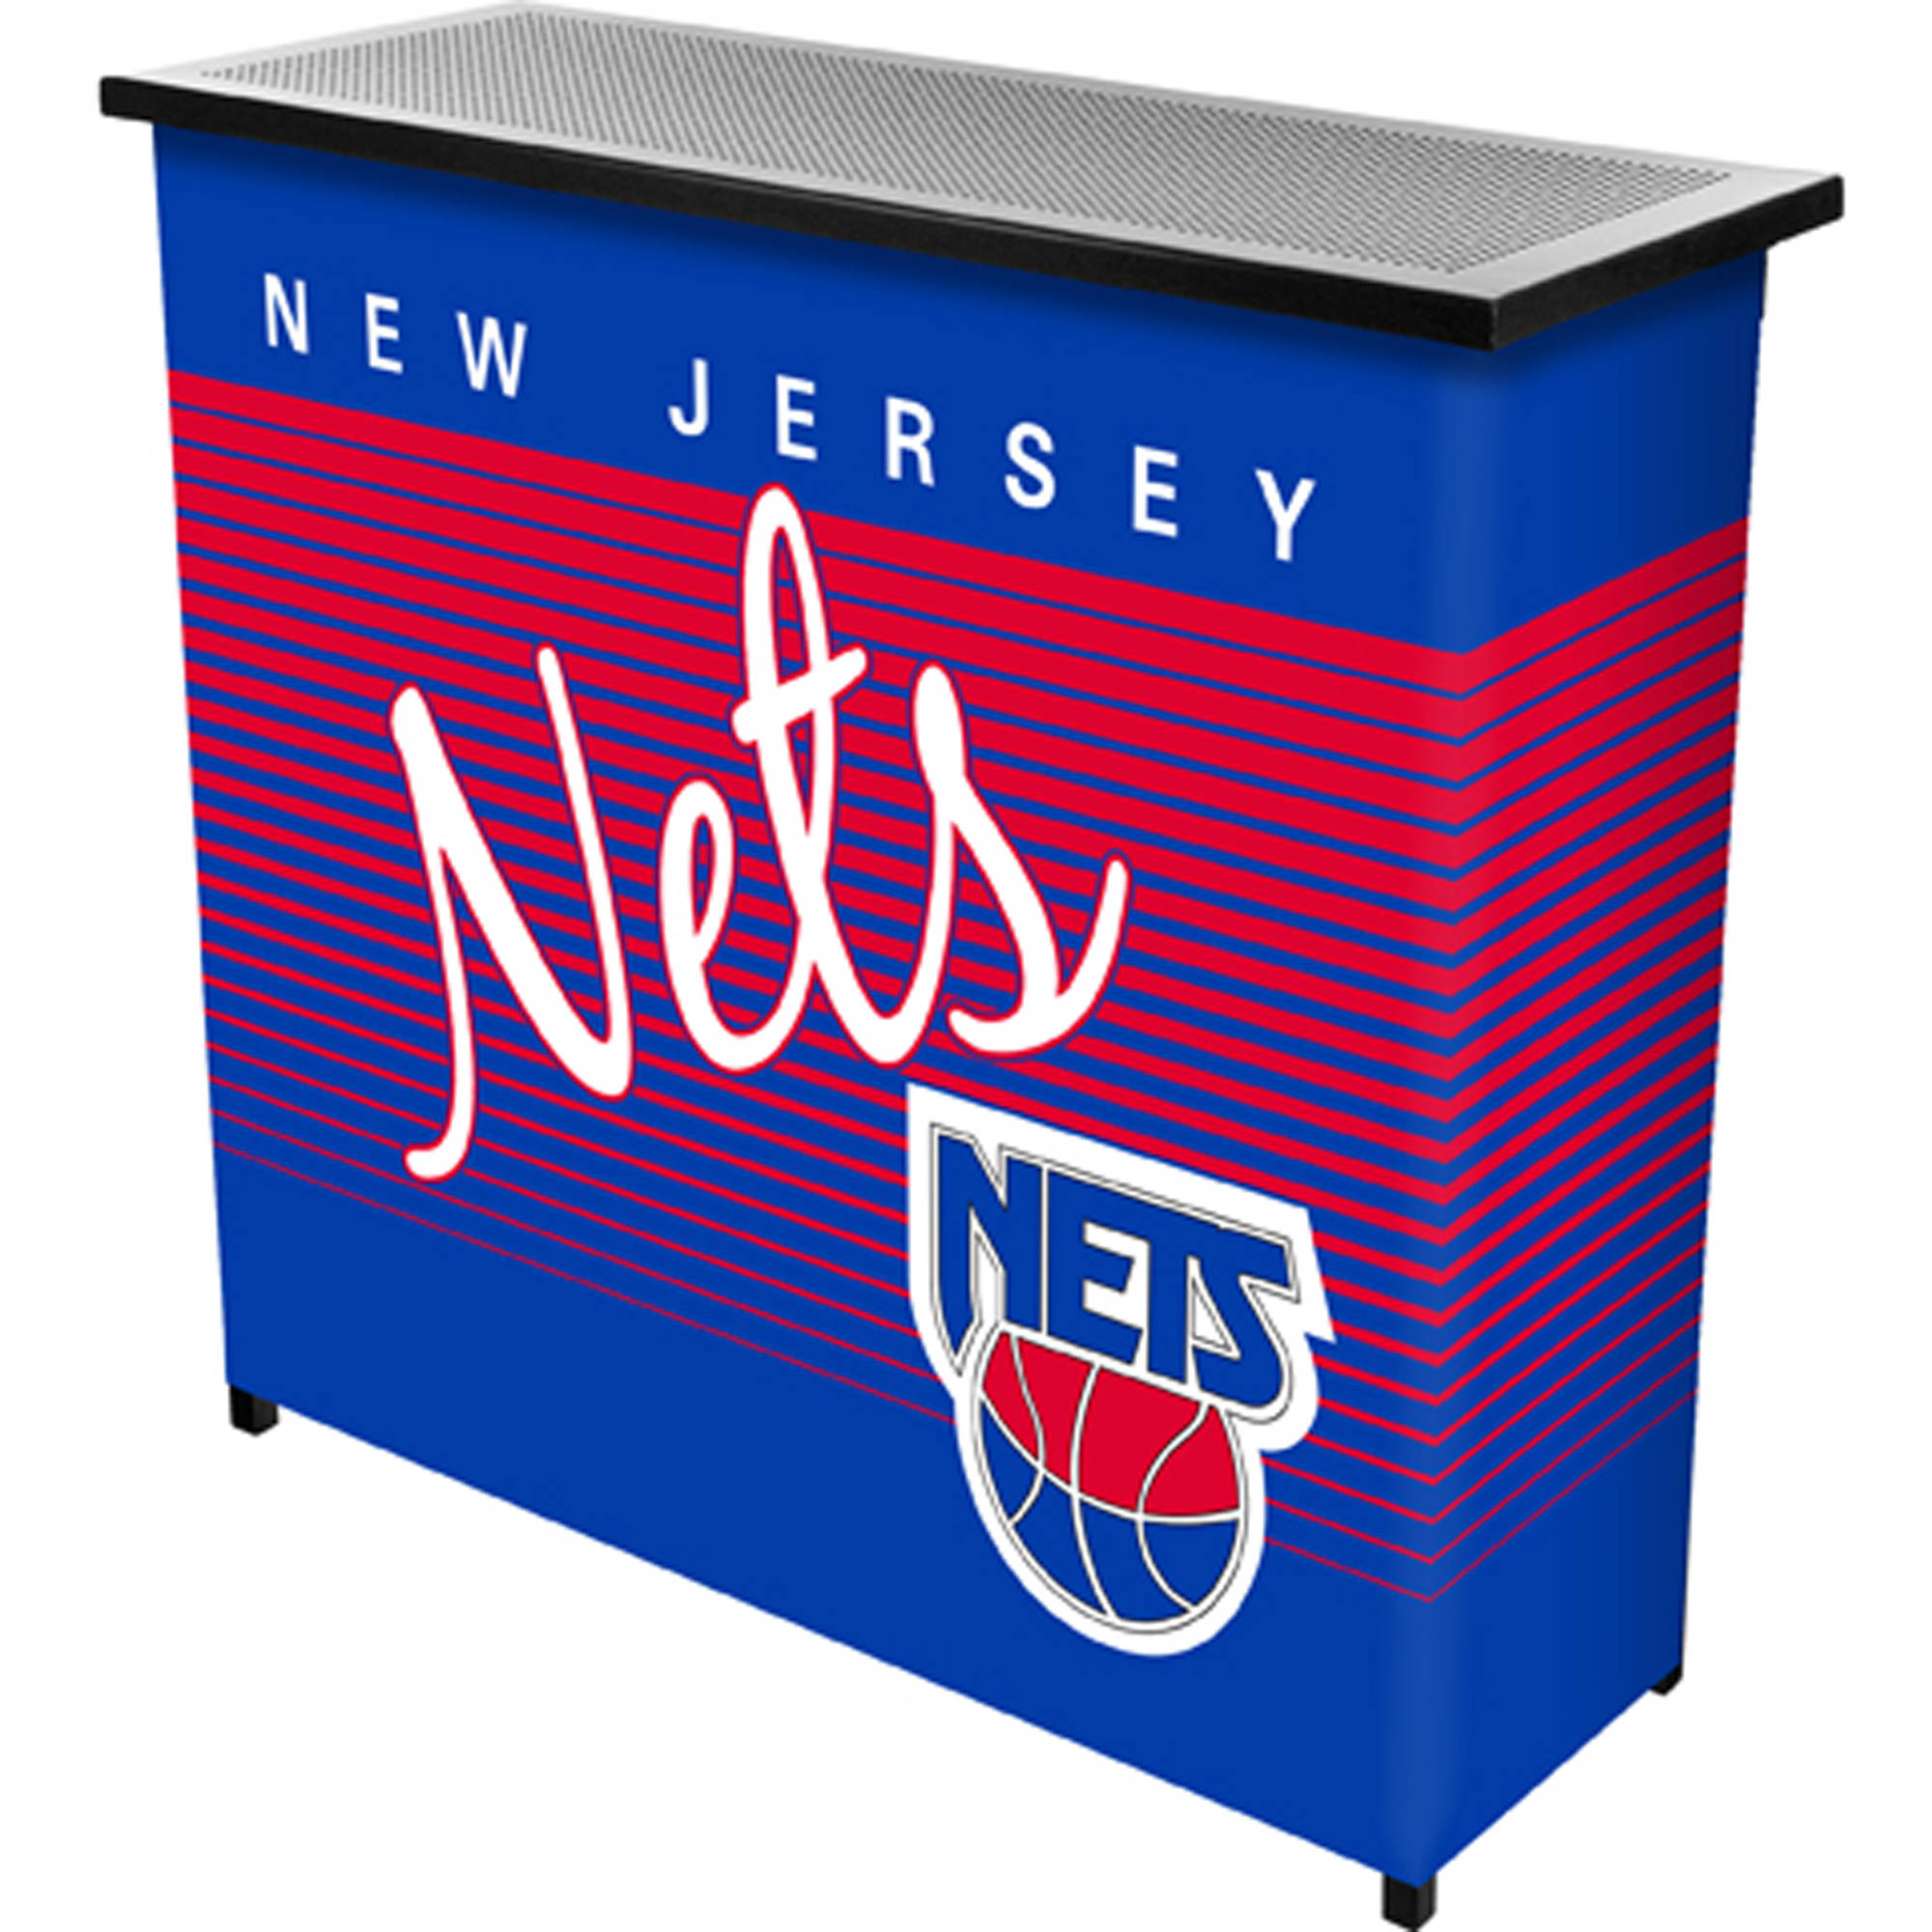 New Jersey Nets Hardwood Classics NBA Portable Bar with Carrying Case